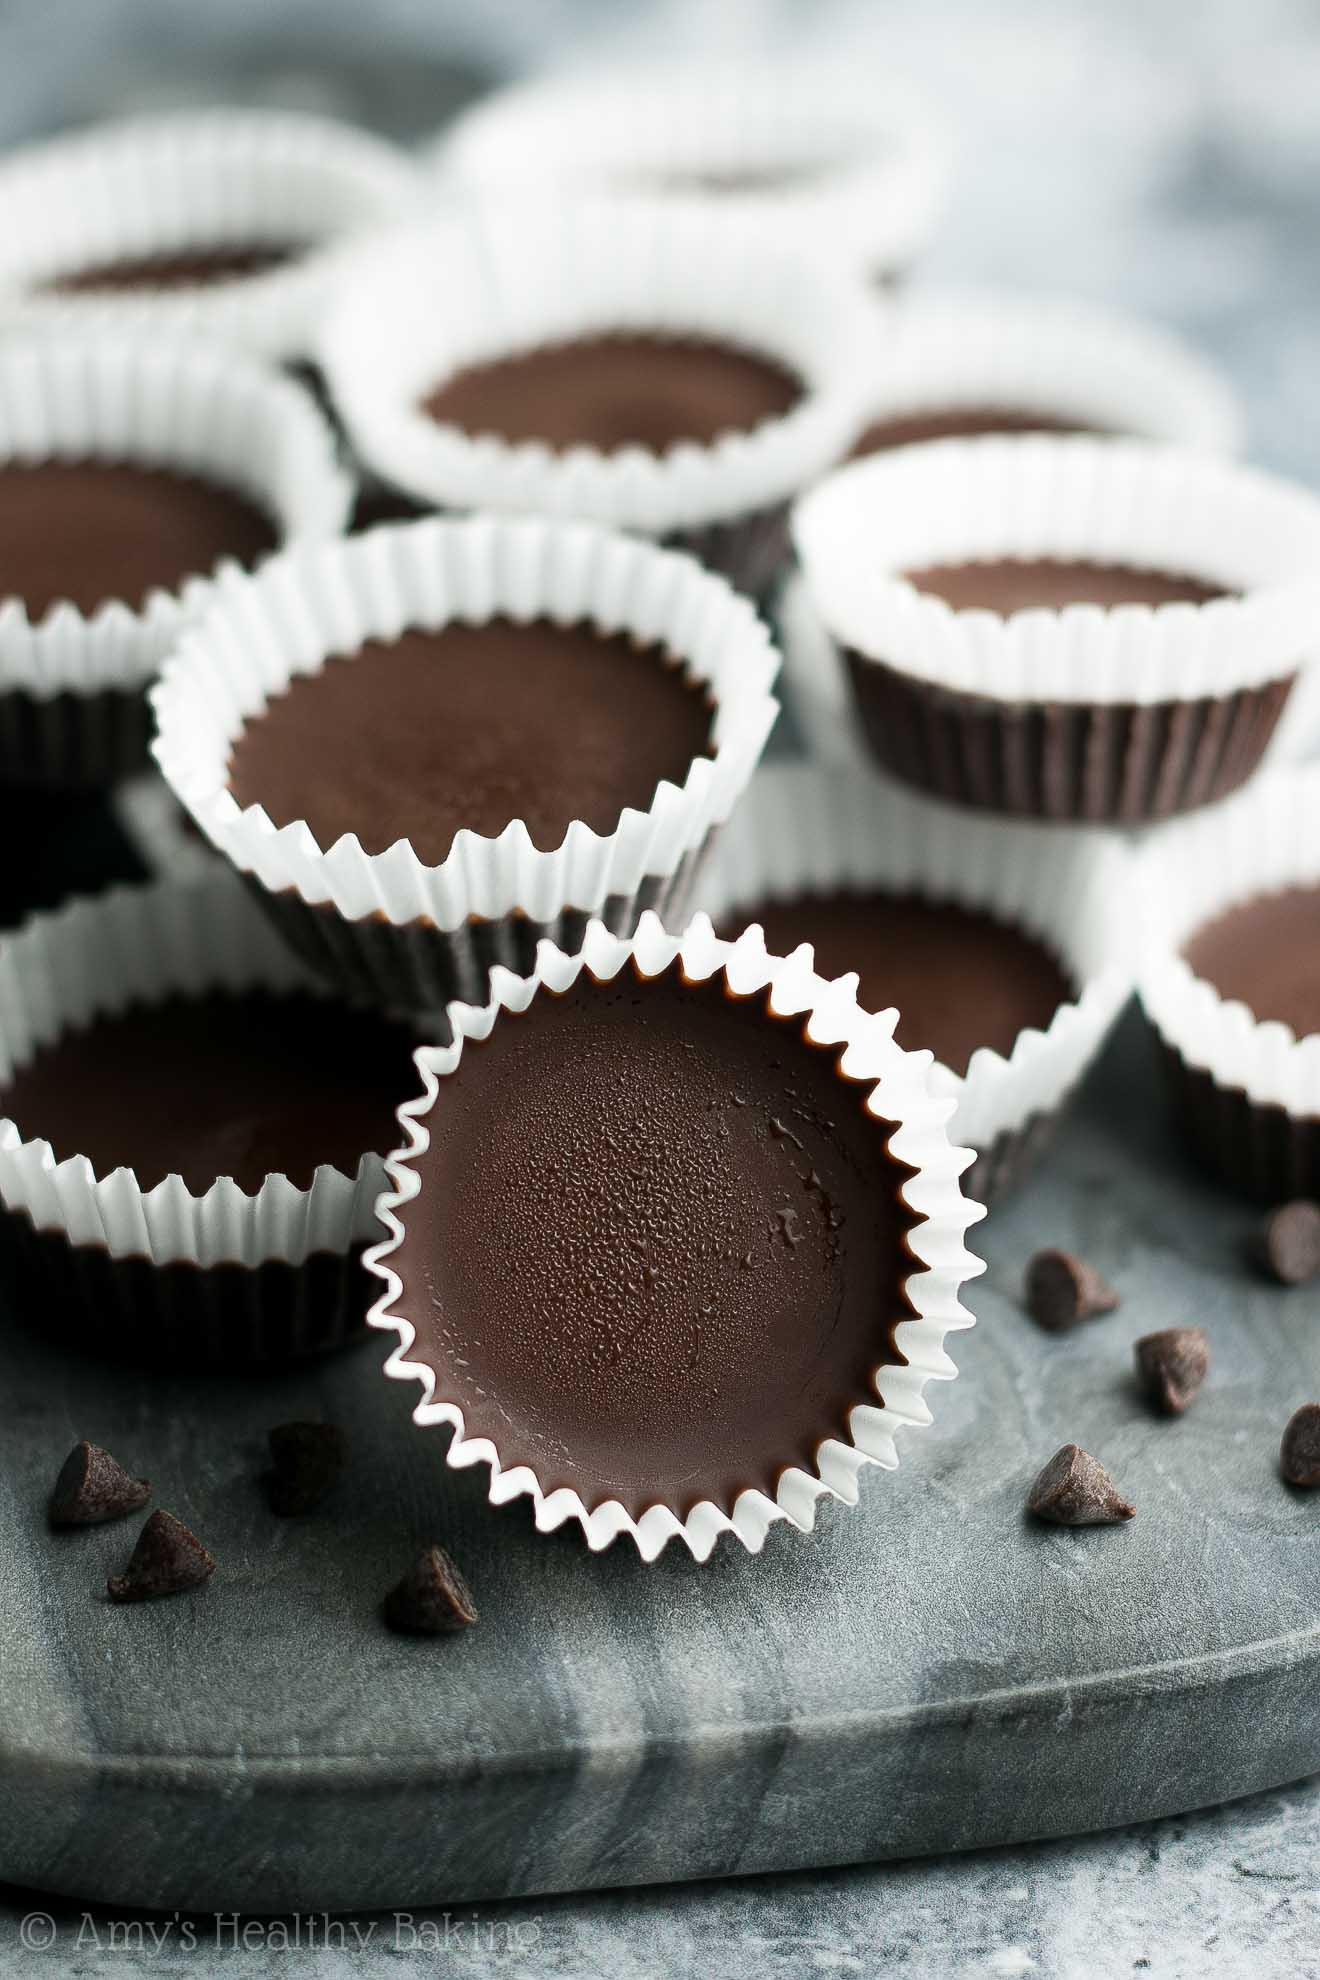 """{HEALTHY!} Chocolate Chip Cookie Dough """"Peanut Butter"""" Cups -- only 45 calories! They're INSANELY GOOD!! WAY better than regular Reese's! (Because you can't beat egg-free flourless cookie dough filling!!) I keep a big batch in my freezer. They're SO perfect for chocolate & candy cravings! #recipe"""